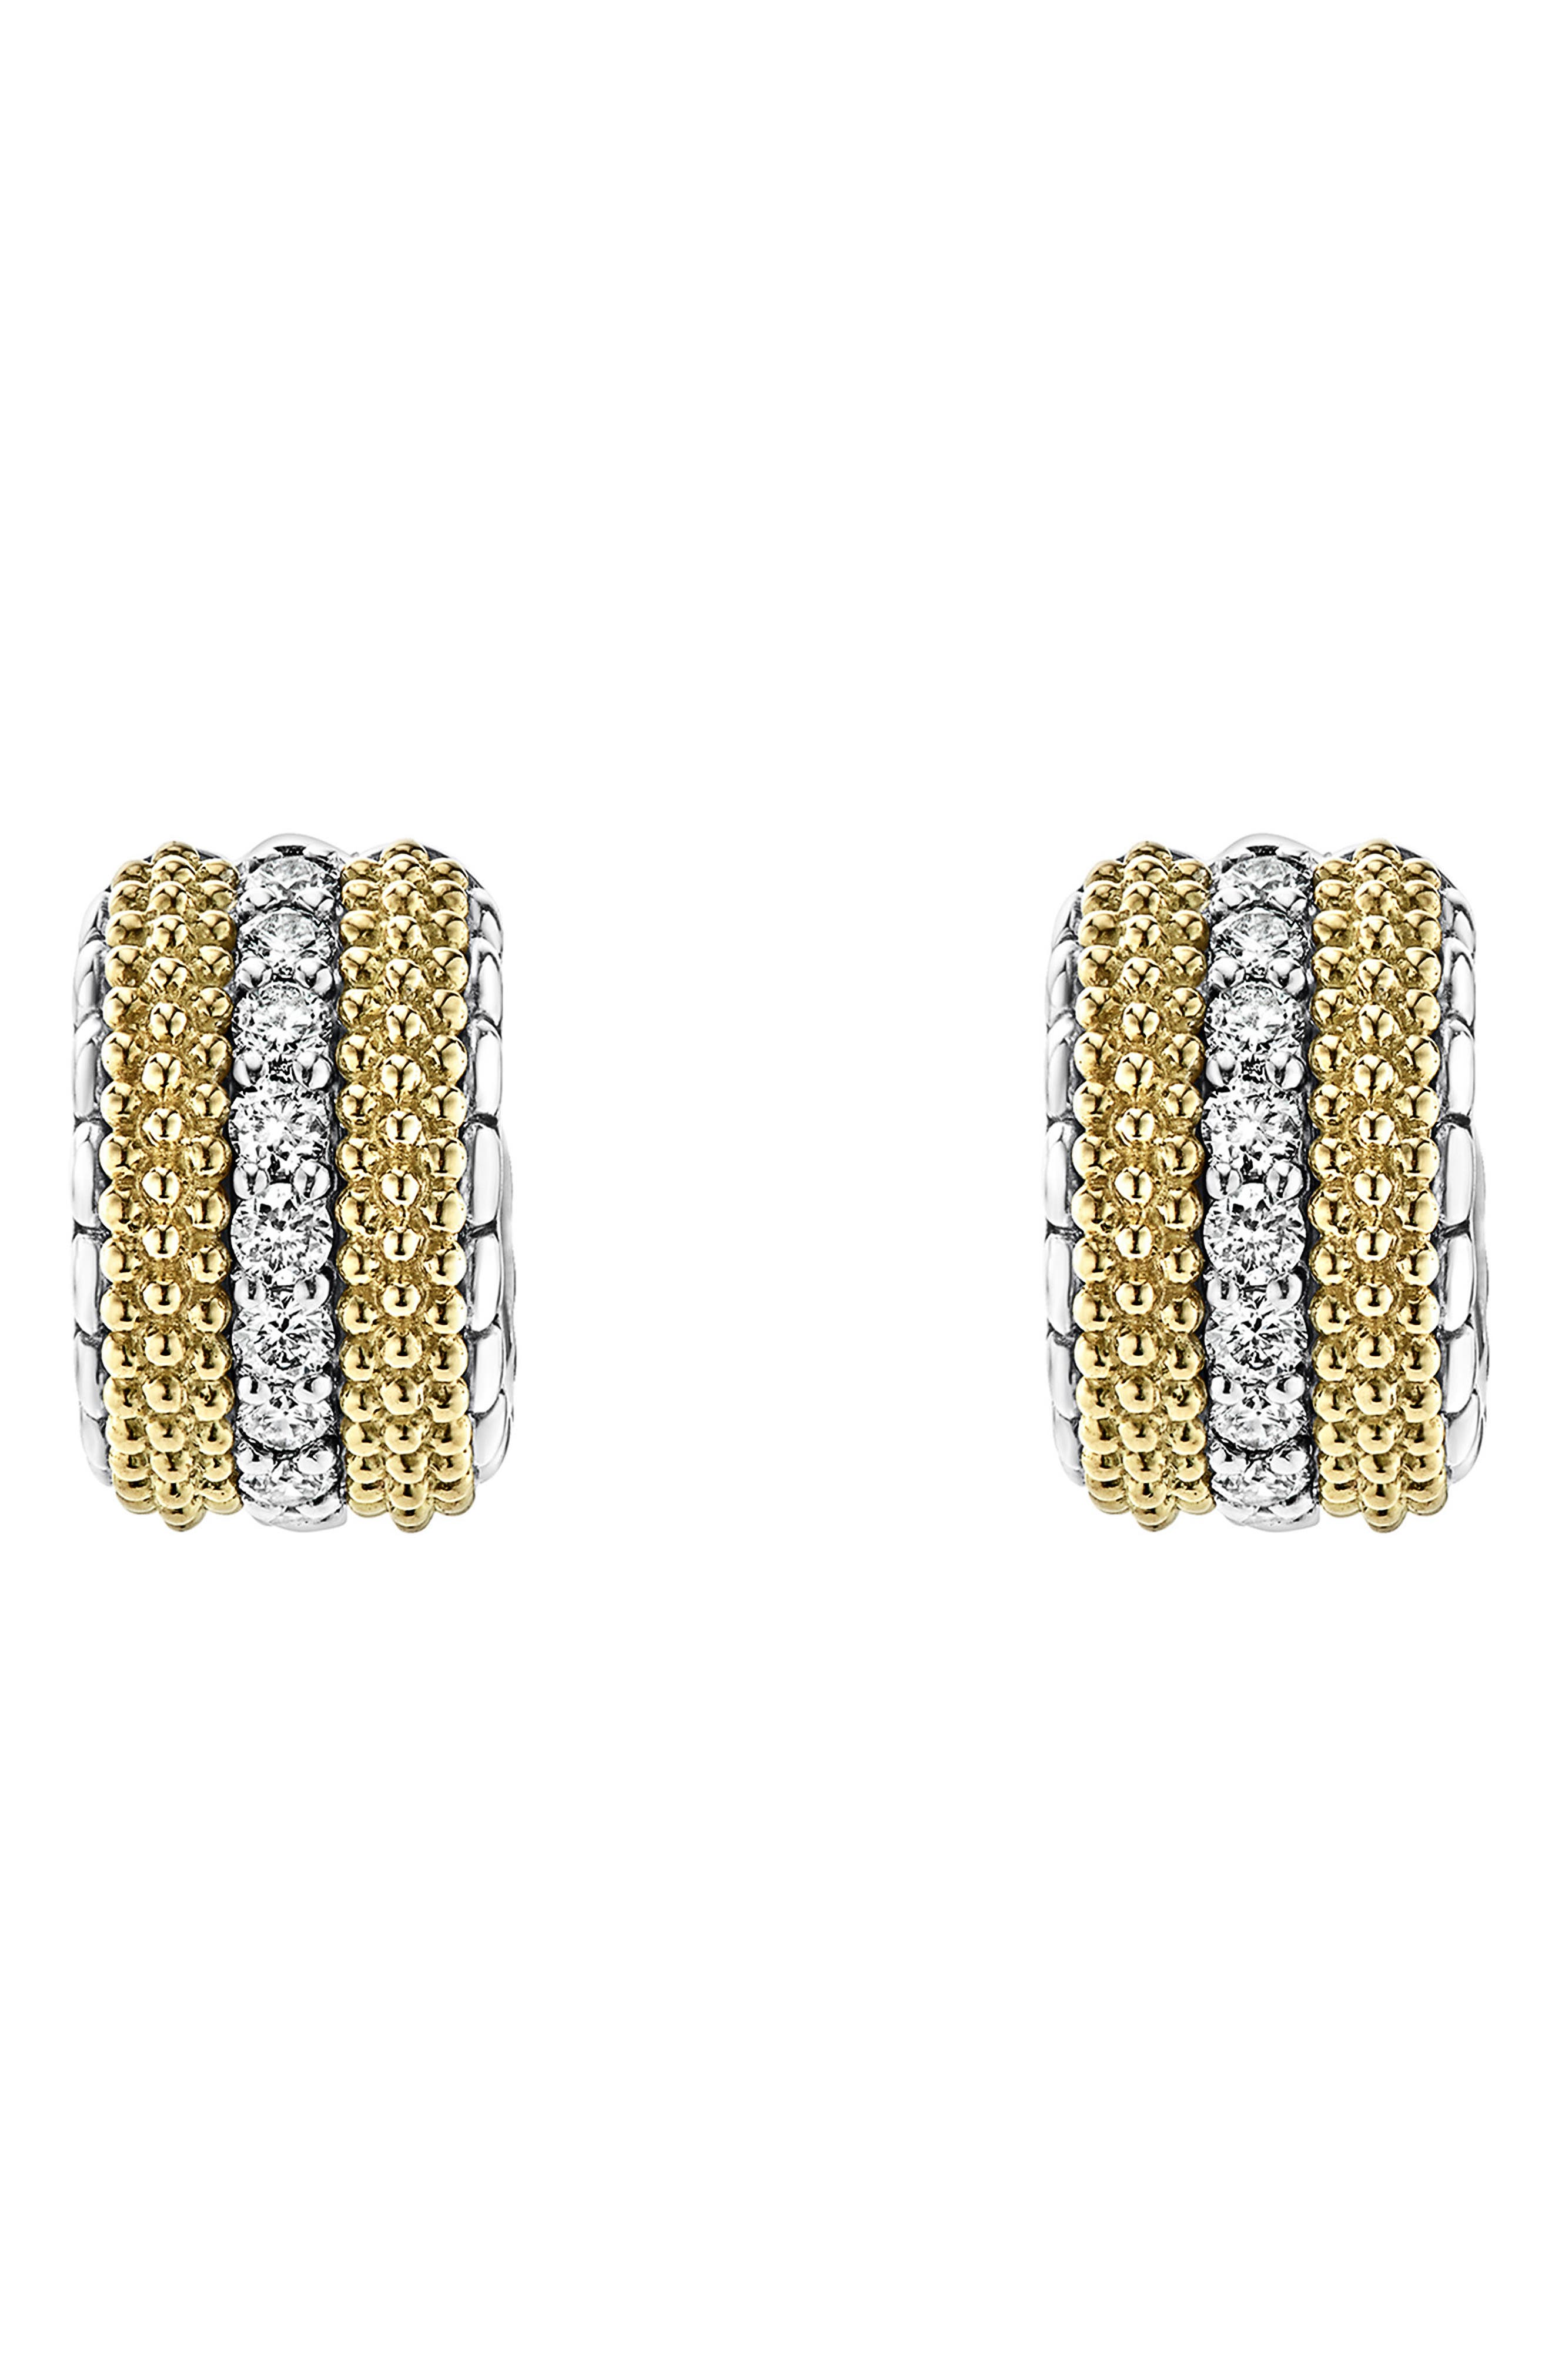 Alternate Image 1 Selected - LAGOS Lux Diamond Hoop Earrings